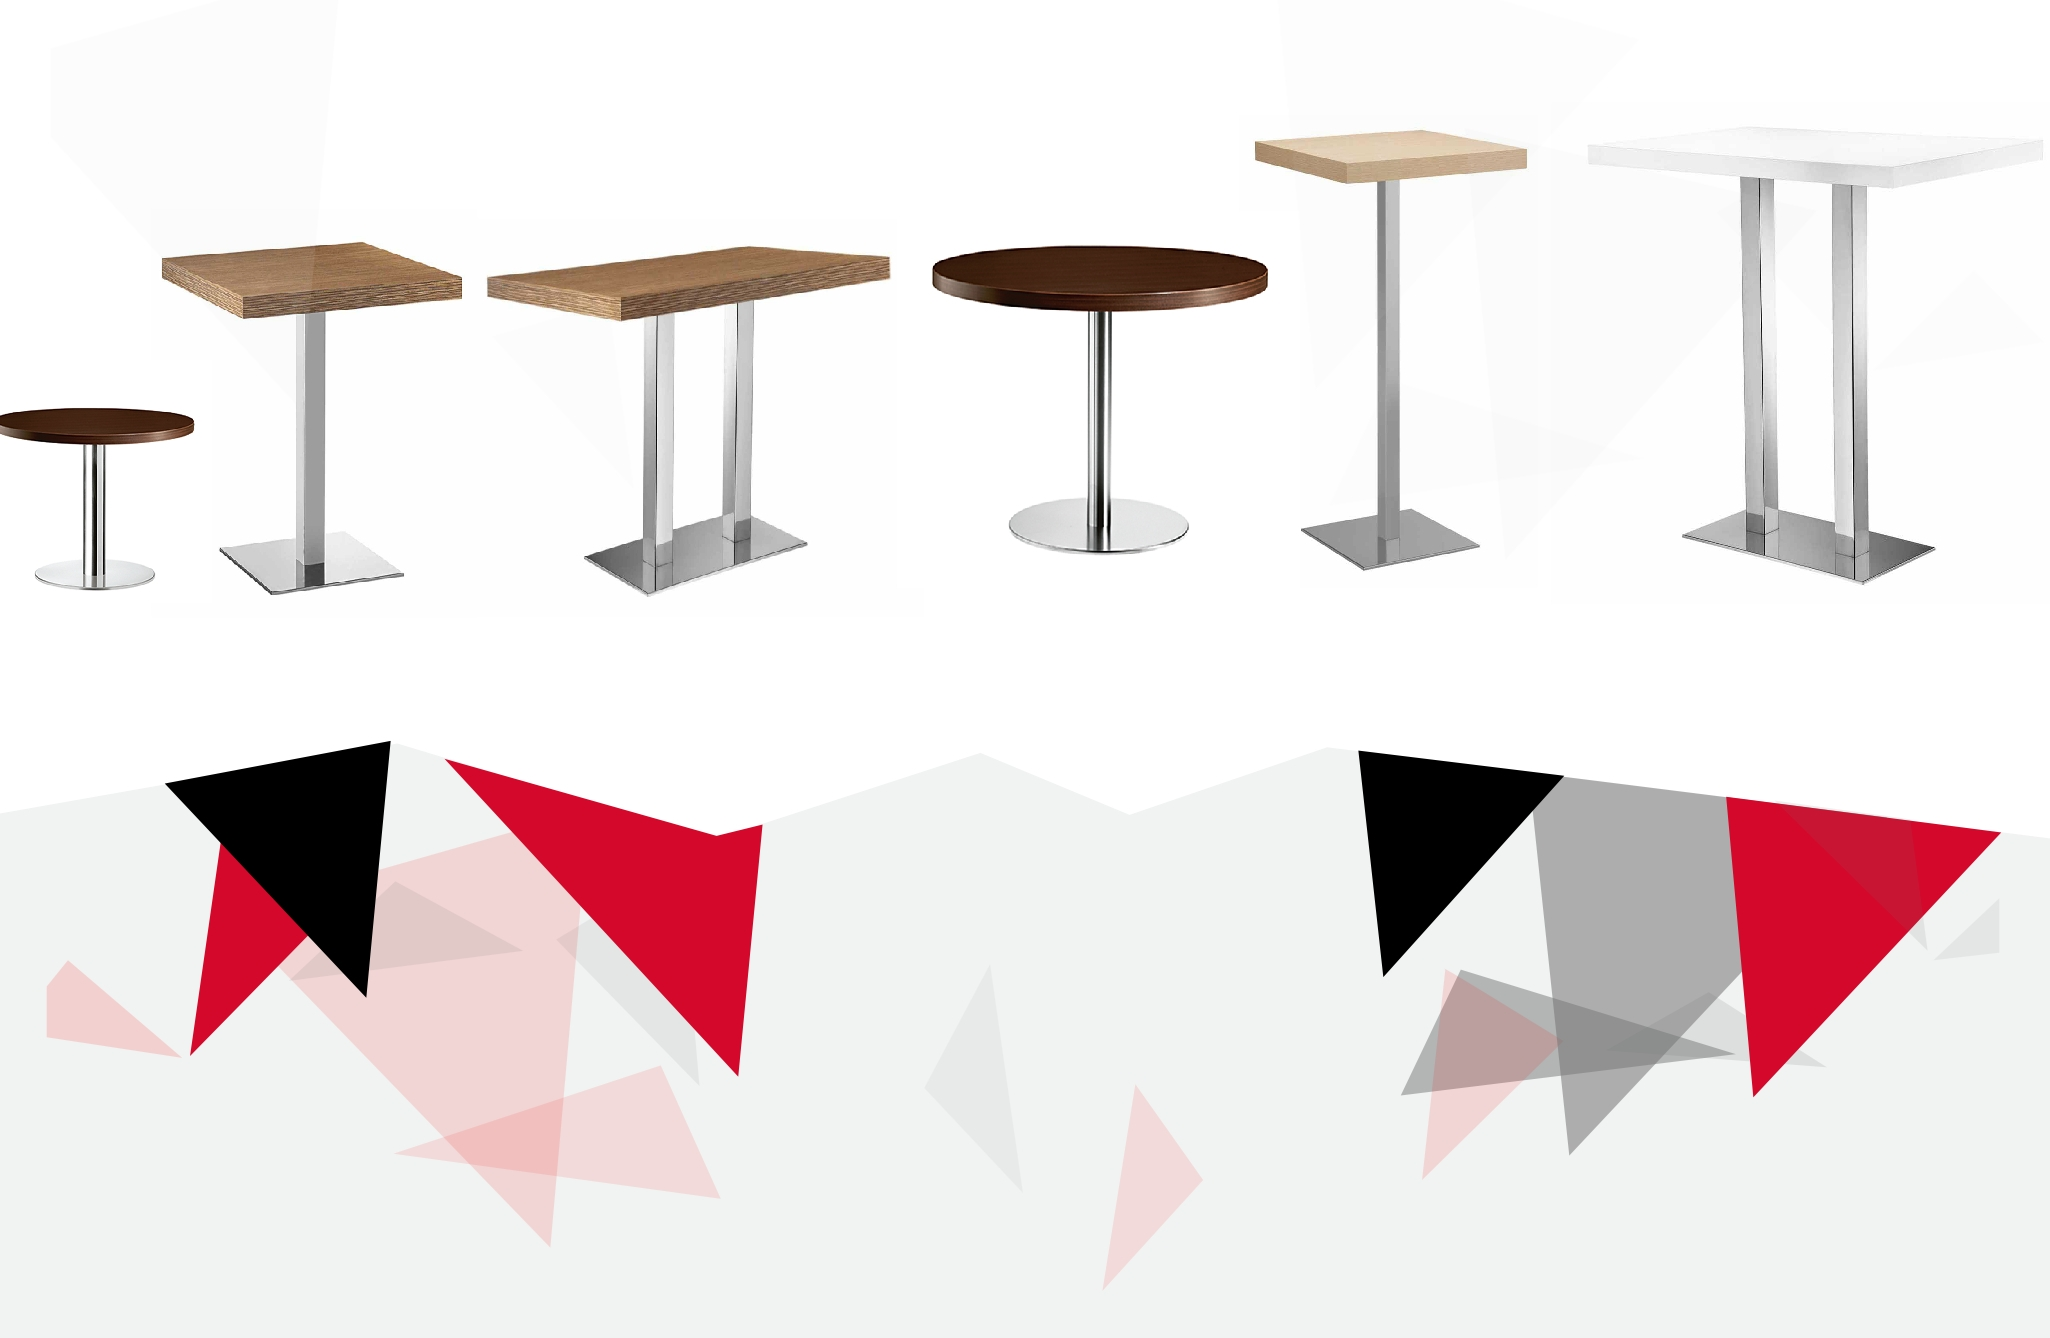 table restaurant, table basse,table haute mange debout,table chr,mobiliers restauration